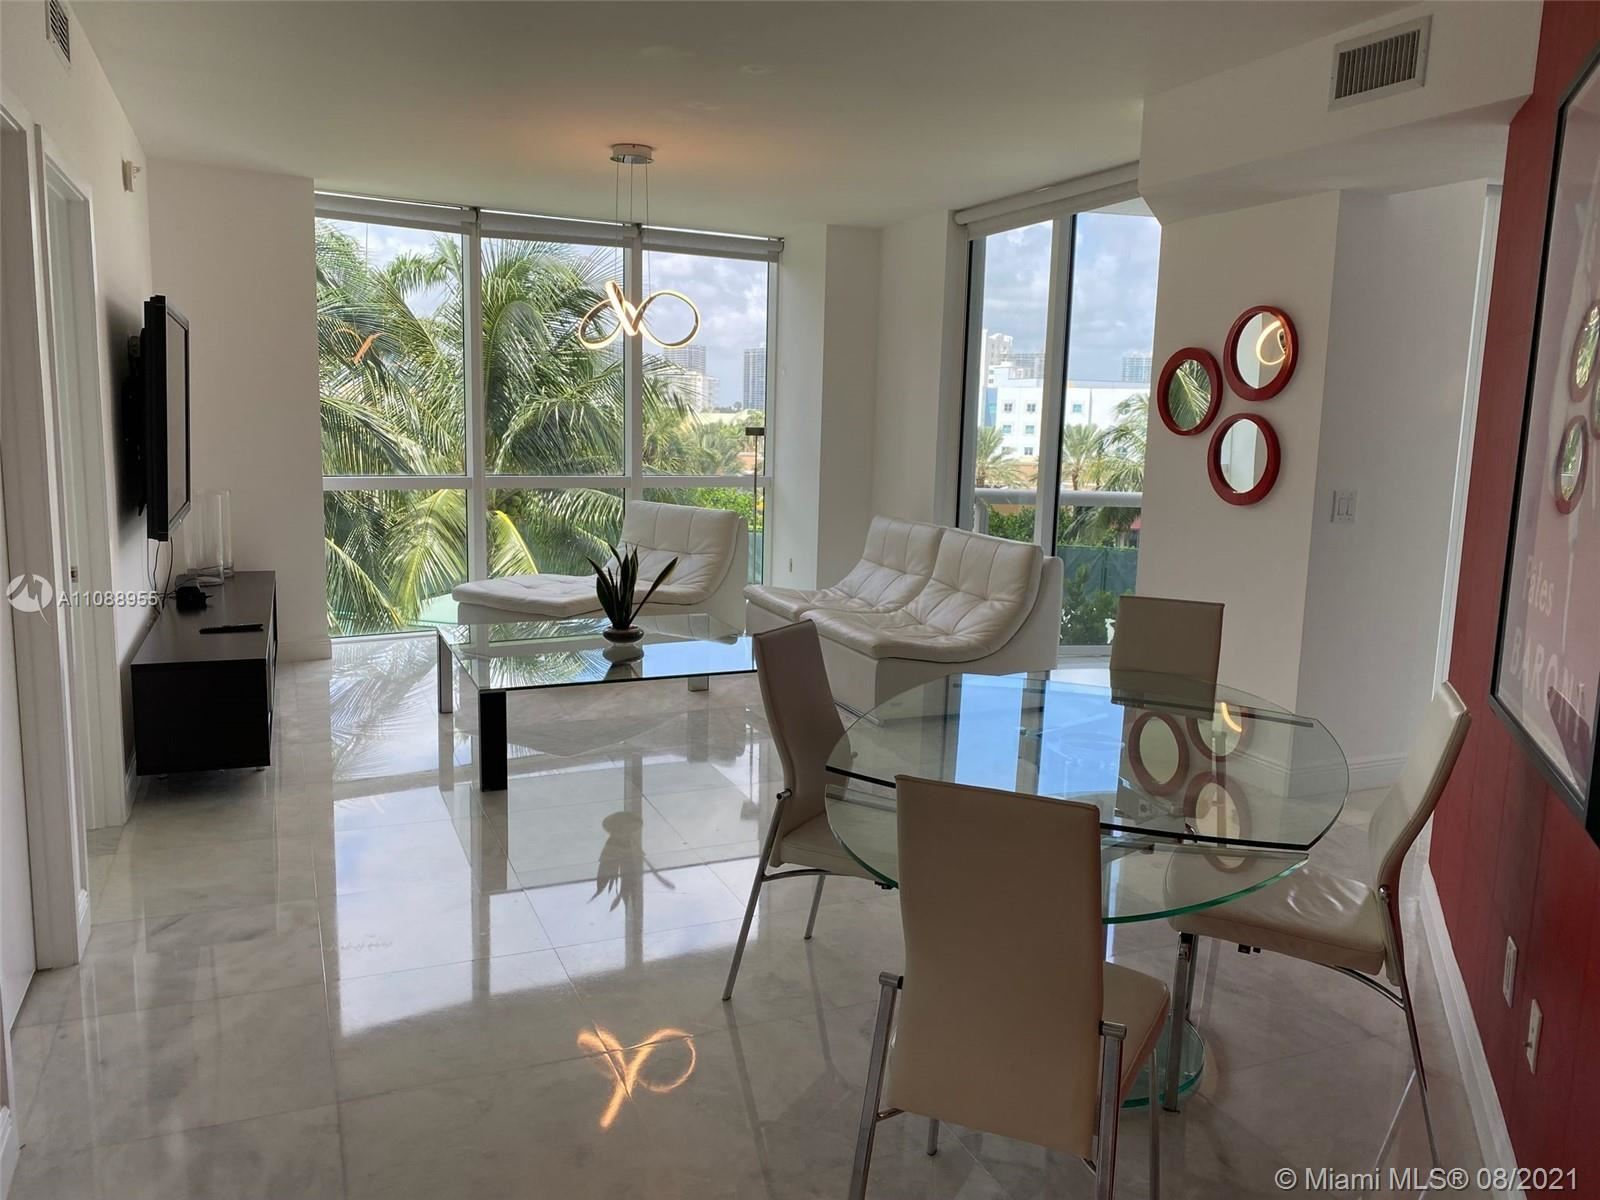 18201 Collins Ave #501A, Sunny Isles, FL 33160 - #: A11088955